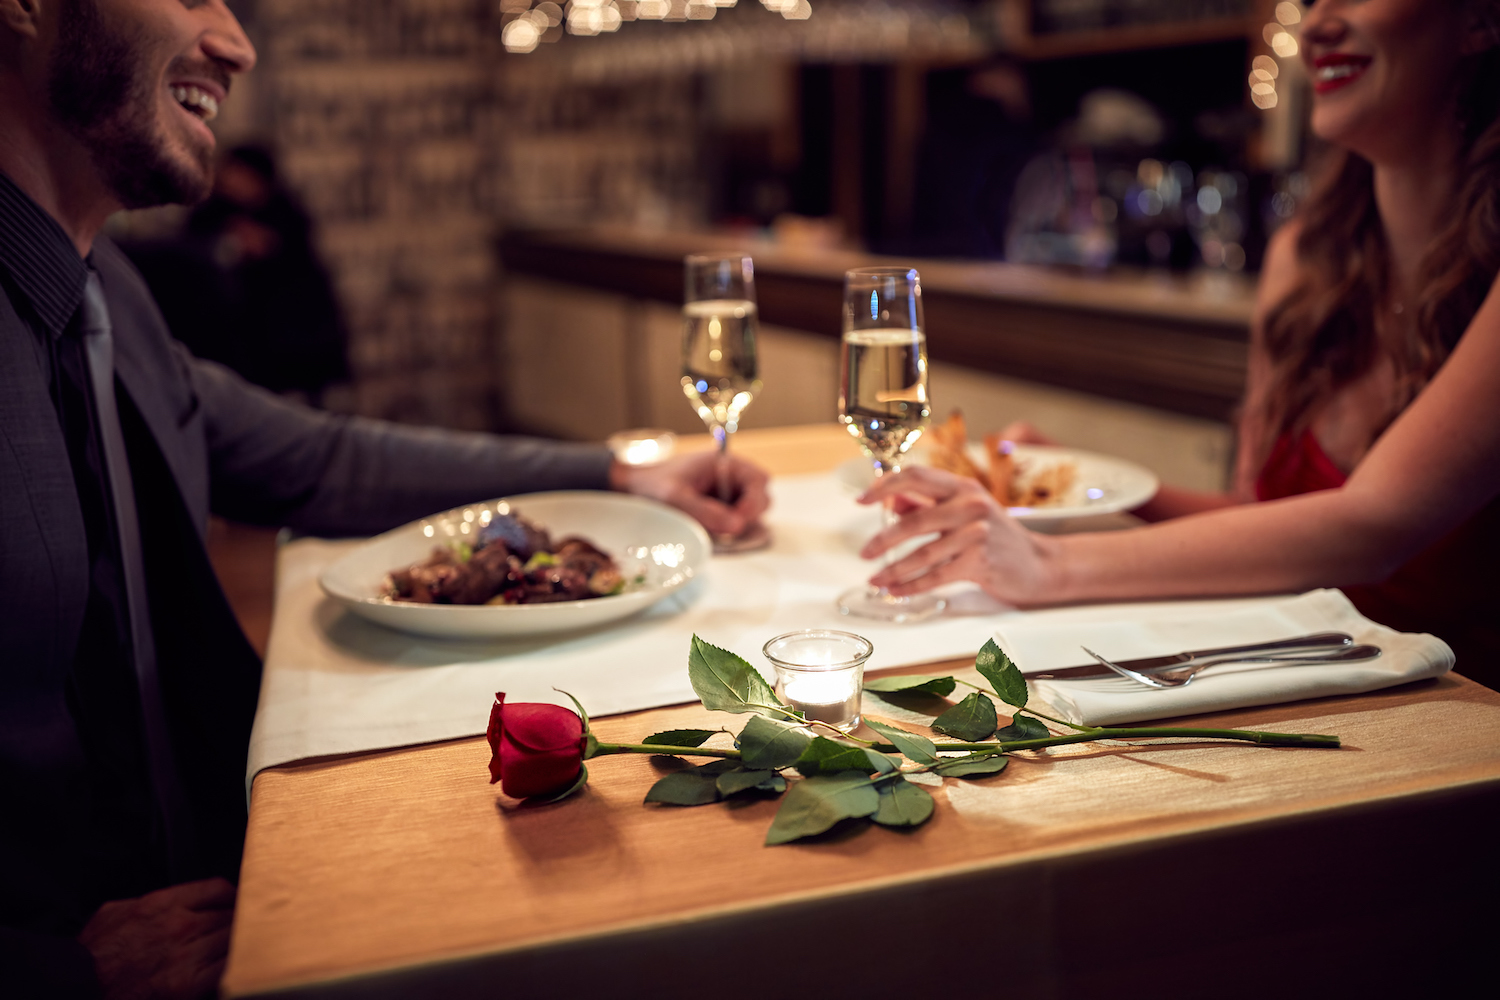 Romantic dinners? Obligation chocolate? Rakuten tracks global Valentine's Day trends